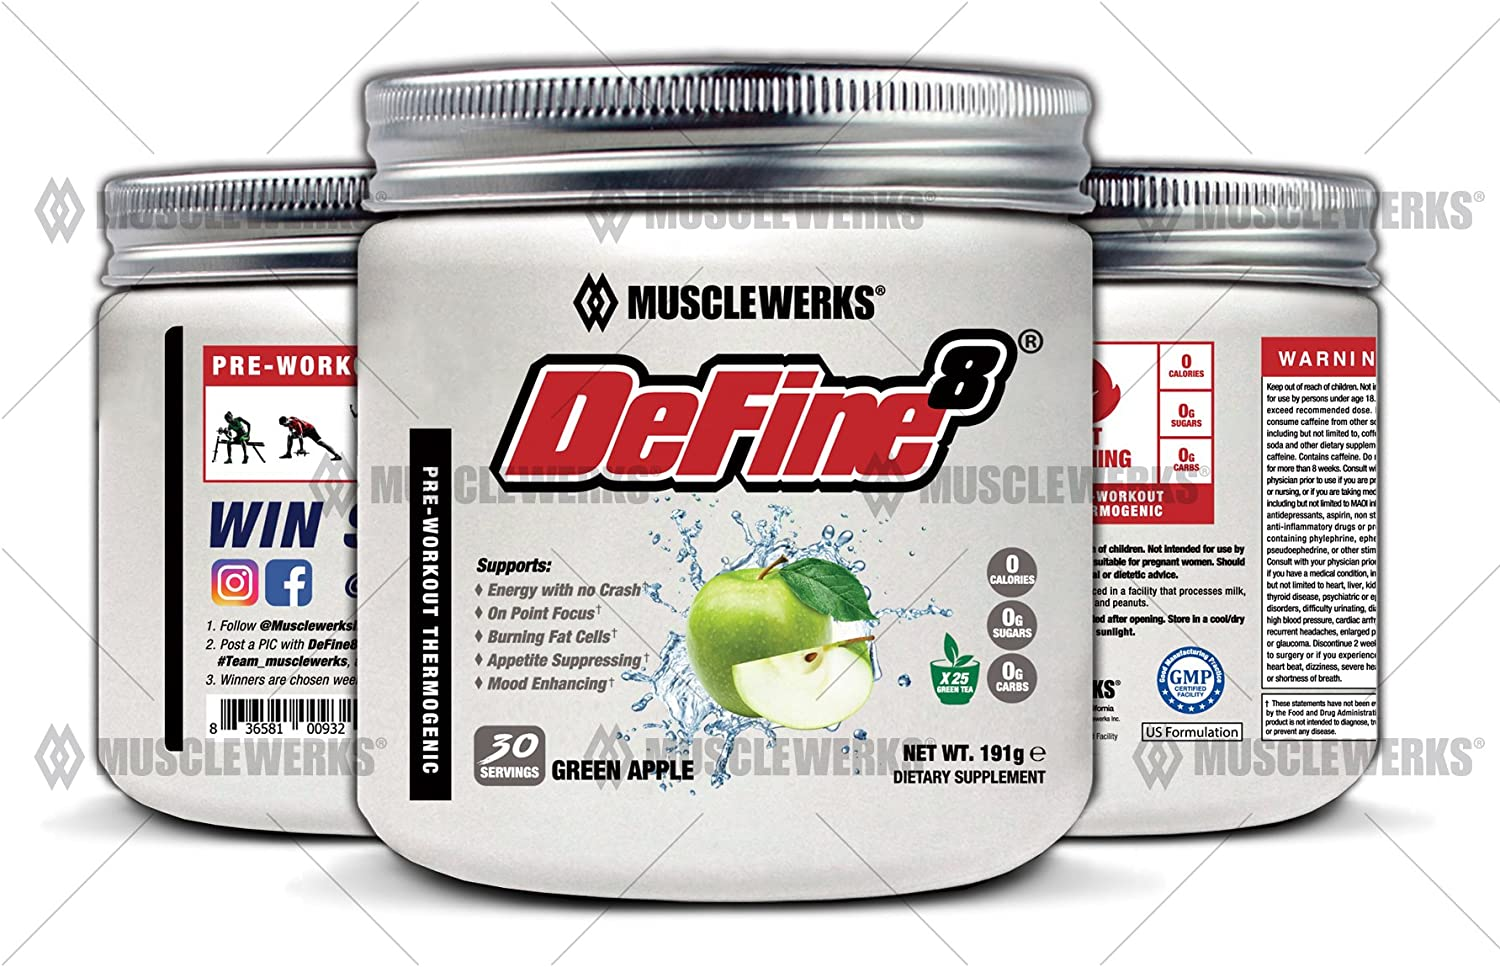 DeFine8 Green Apple – Fat Burner for Women and Men, Pre-Workout Thermogenic – NEW ADVANCED FORMULA, Appetite Suppressant, Boosts Metabolism Curbs Sweet Cravings for Weight Loss